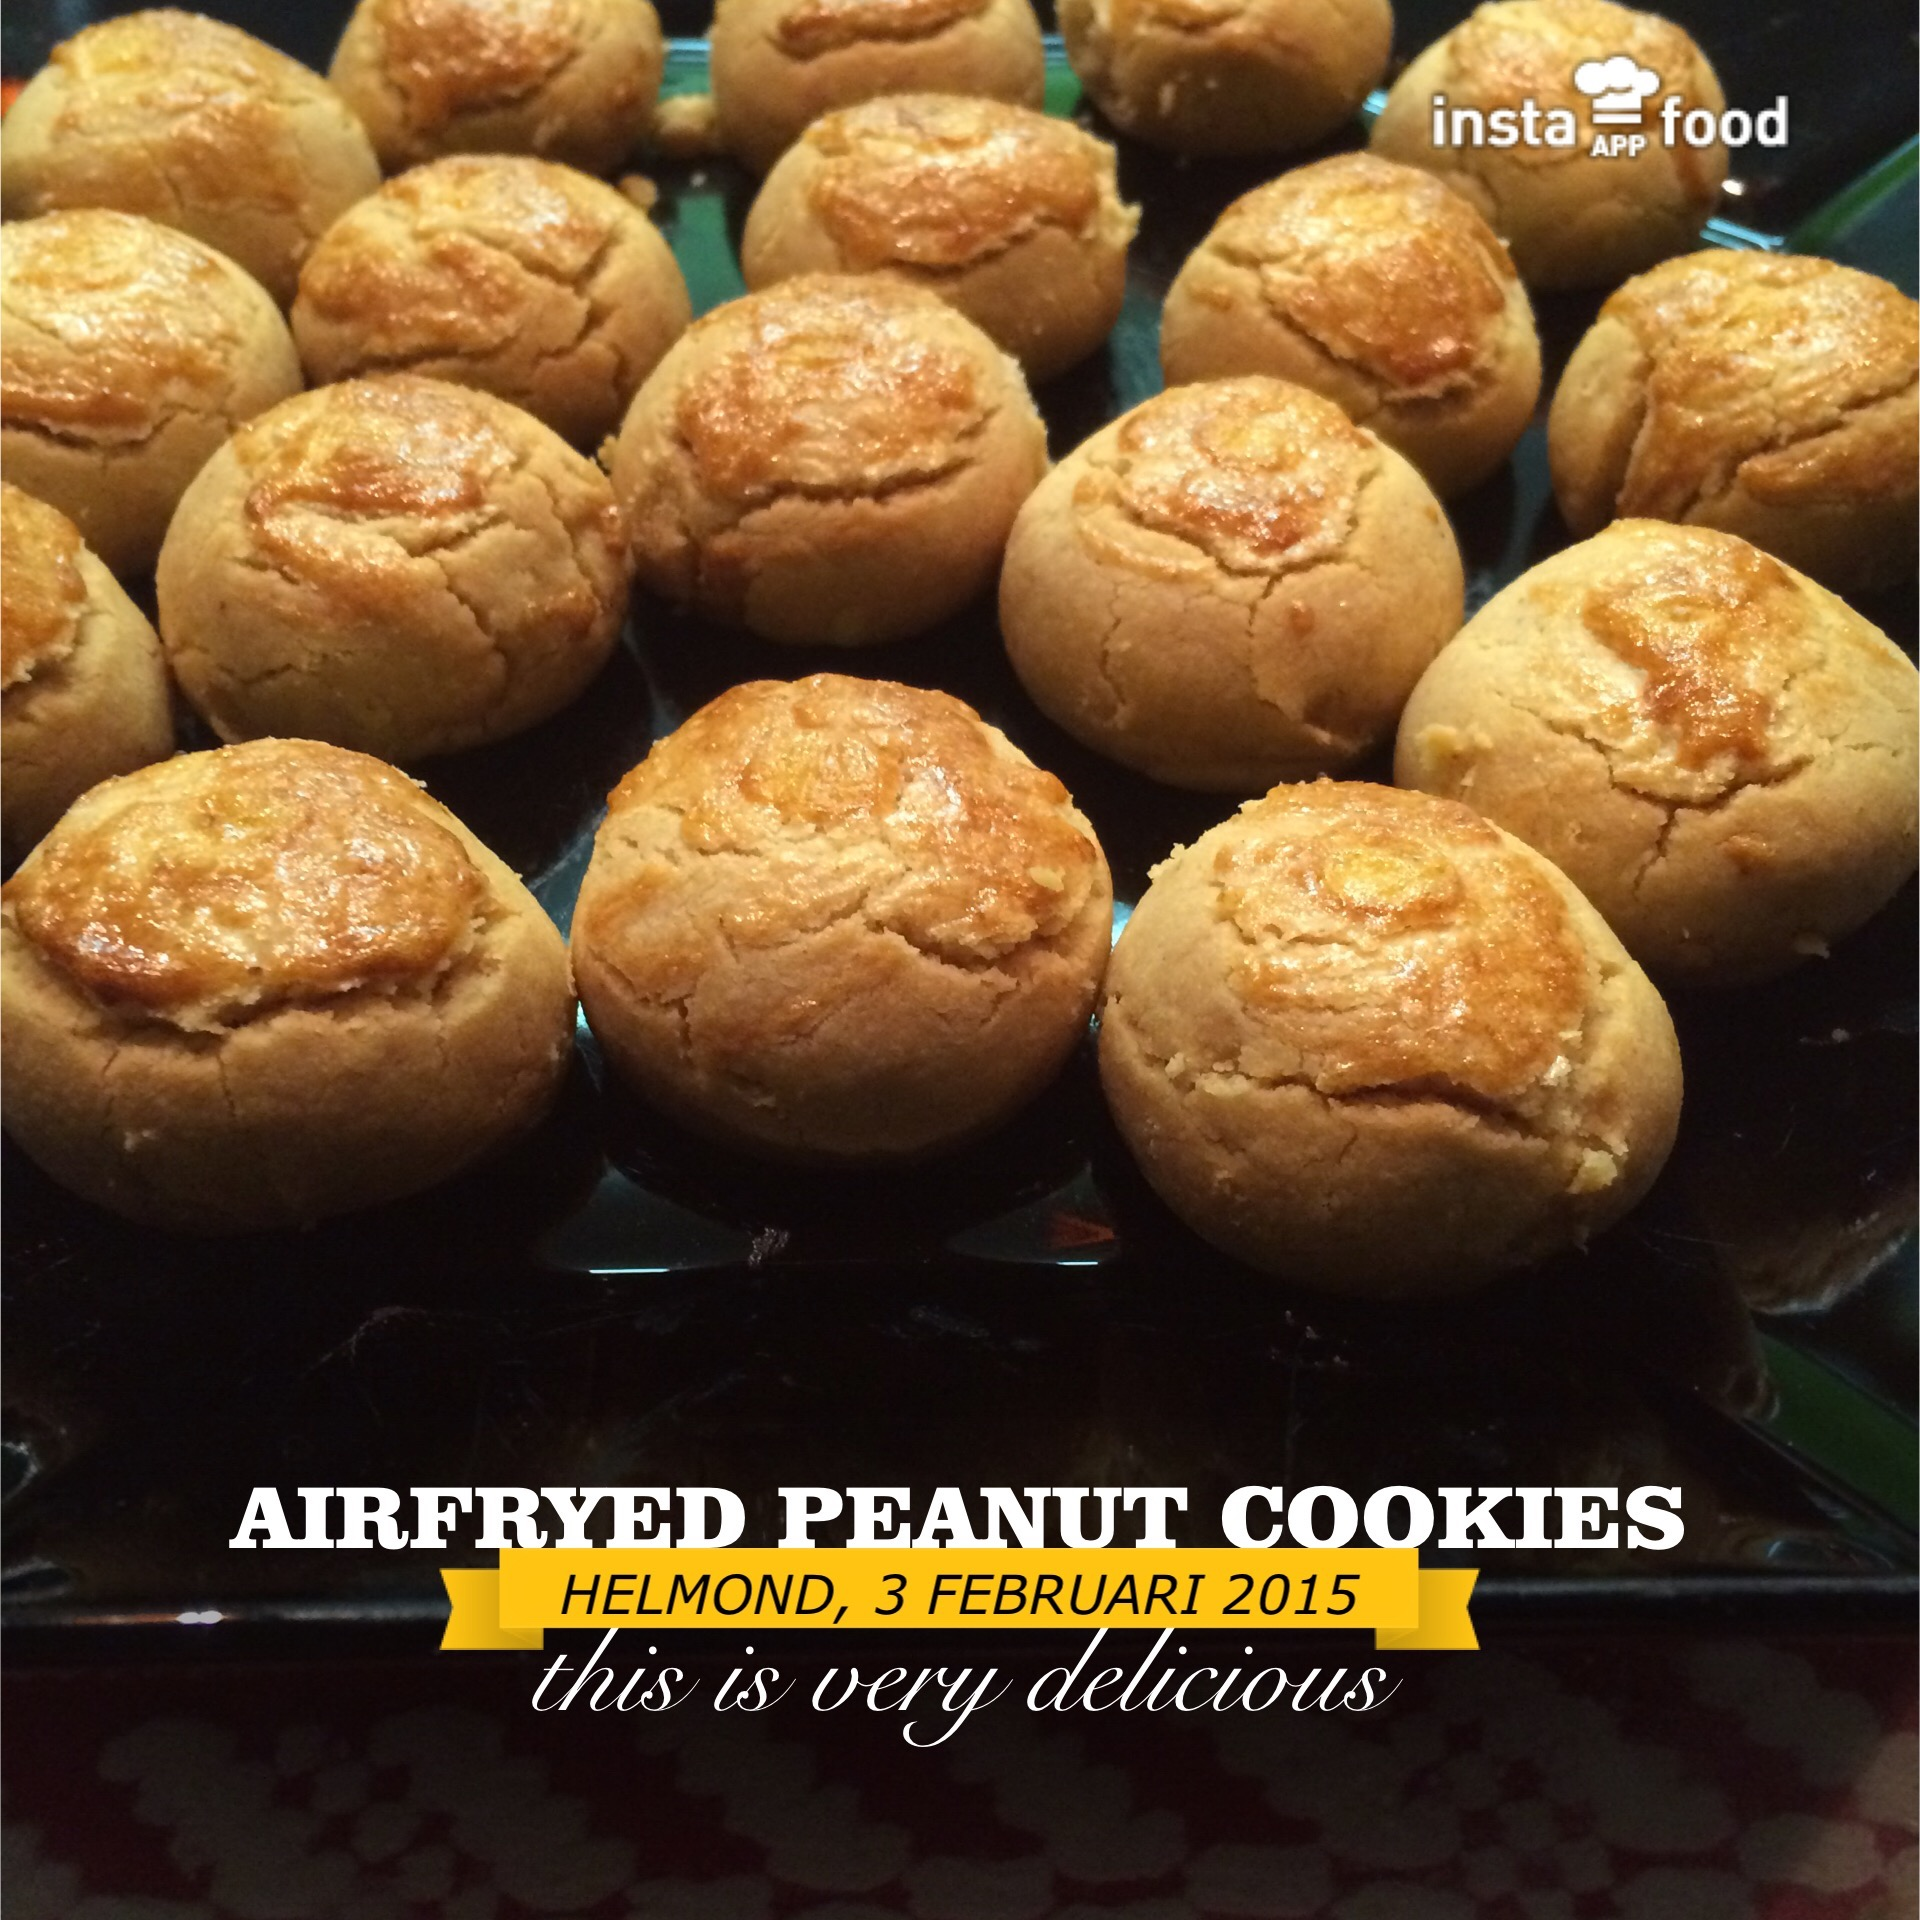 Airfried Peanut cookies